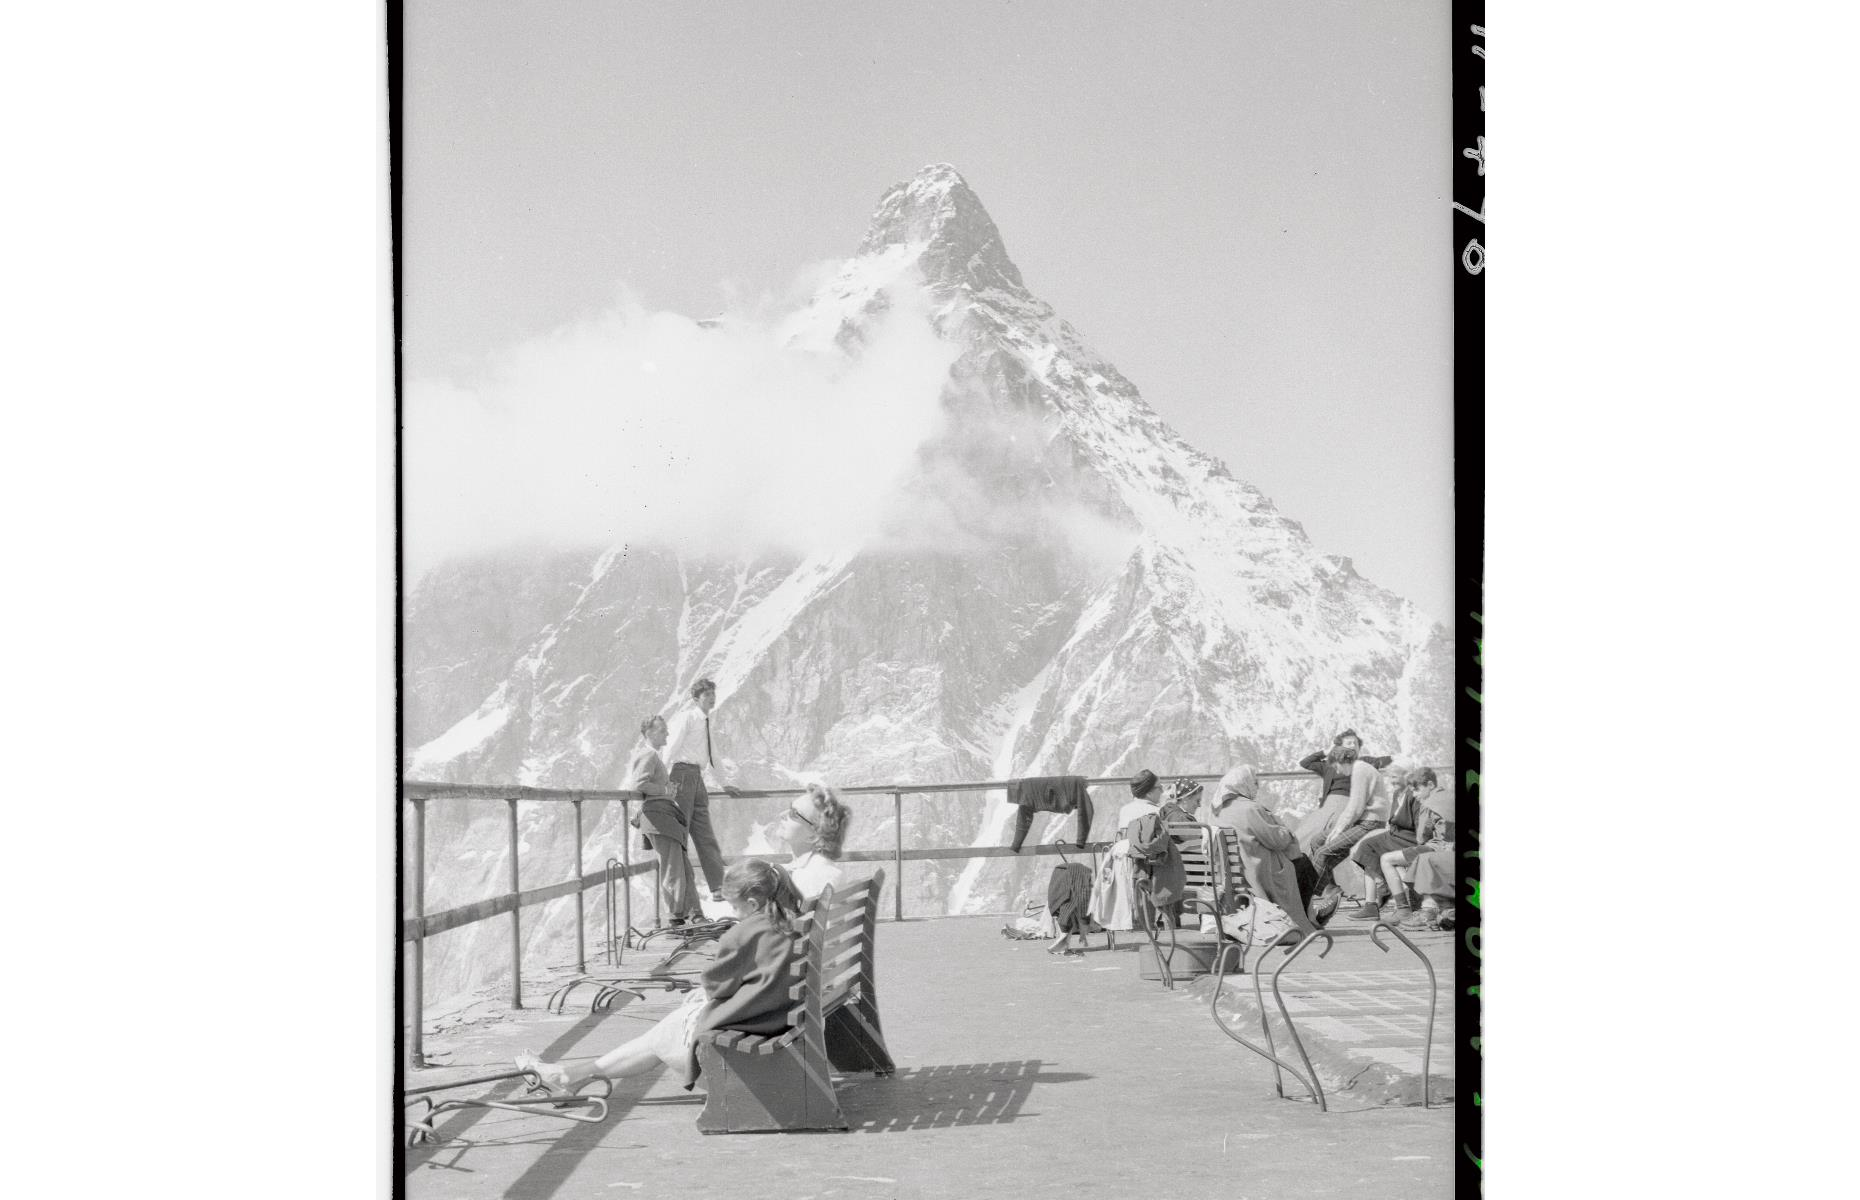 Slide 32 of 51: This horn-shaped mountain in the Swiss Alps, sixmiles (10km) southwest of Zermatt, gained global recognition when its summit was first conquered by British explorer Edward Whymper on 14 July 1865. Tragically however, four of his party fell to their deaths on the way down. In 1971, Whymper published a book about his experience climbing the mountain, Scrambles Among the Alps, which became a global bestseller and sent tourists flocking to the Matterhorn. Pictured here are vacationerson a viewpoint on the Italian side of the mountain in the 1950s.